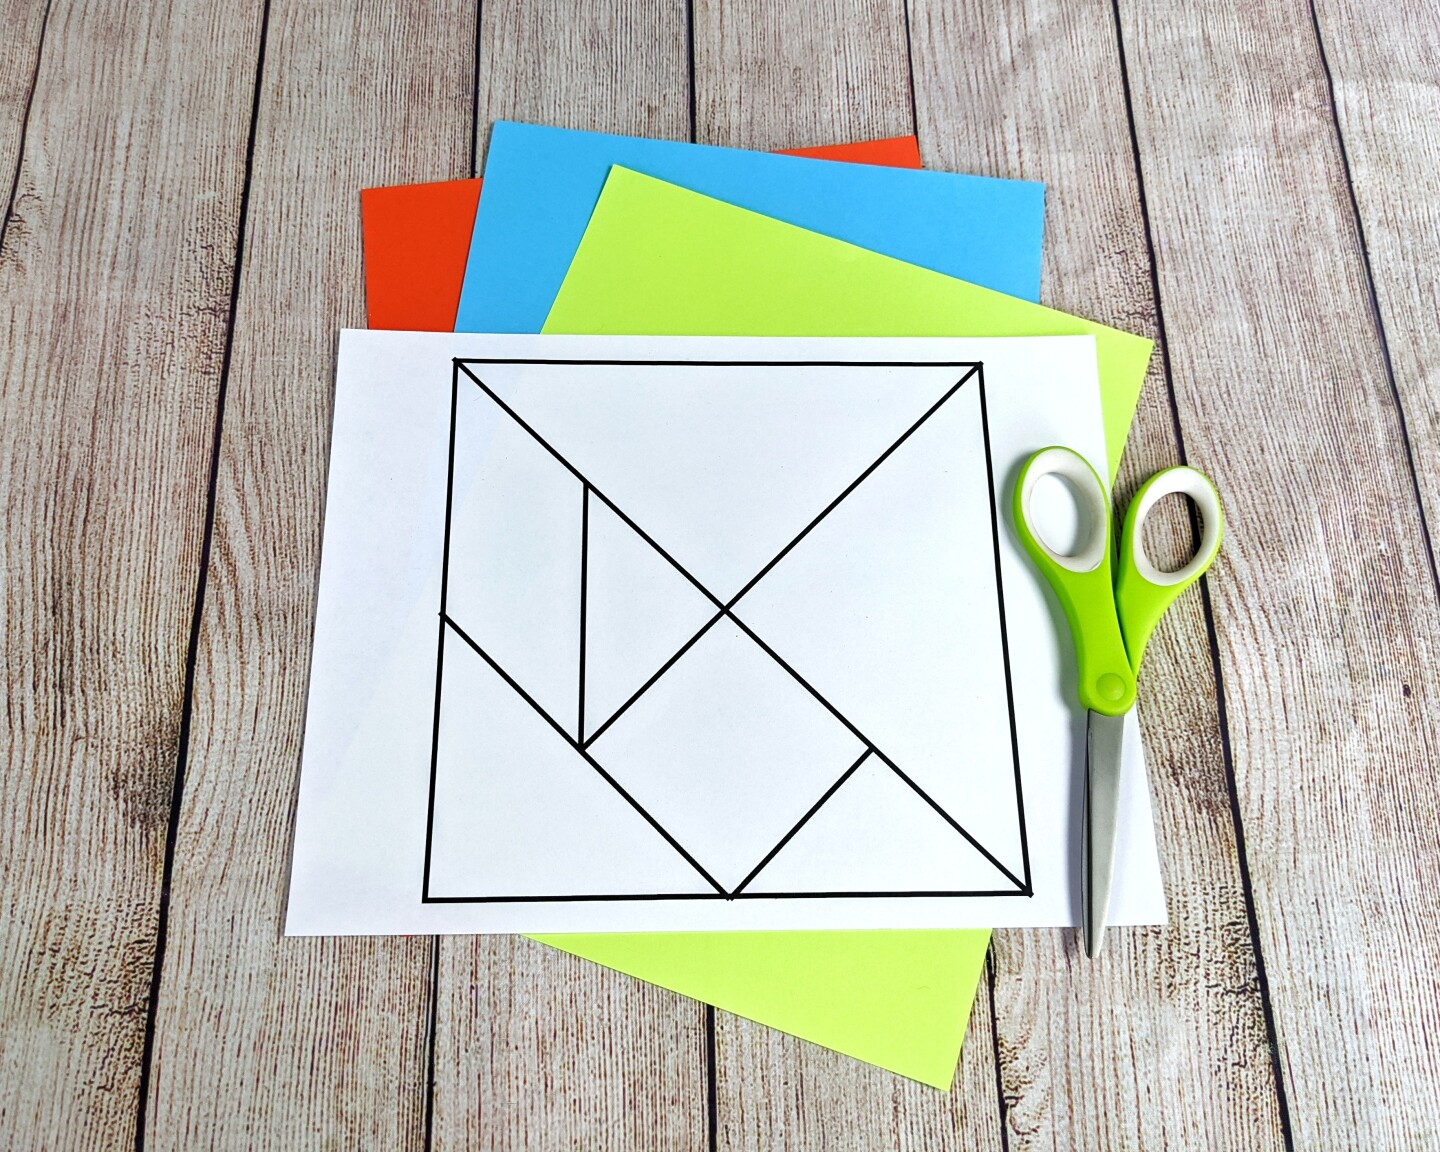 A template for a tangram is laid out on a table alongside some scissors and colorful paper.